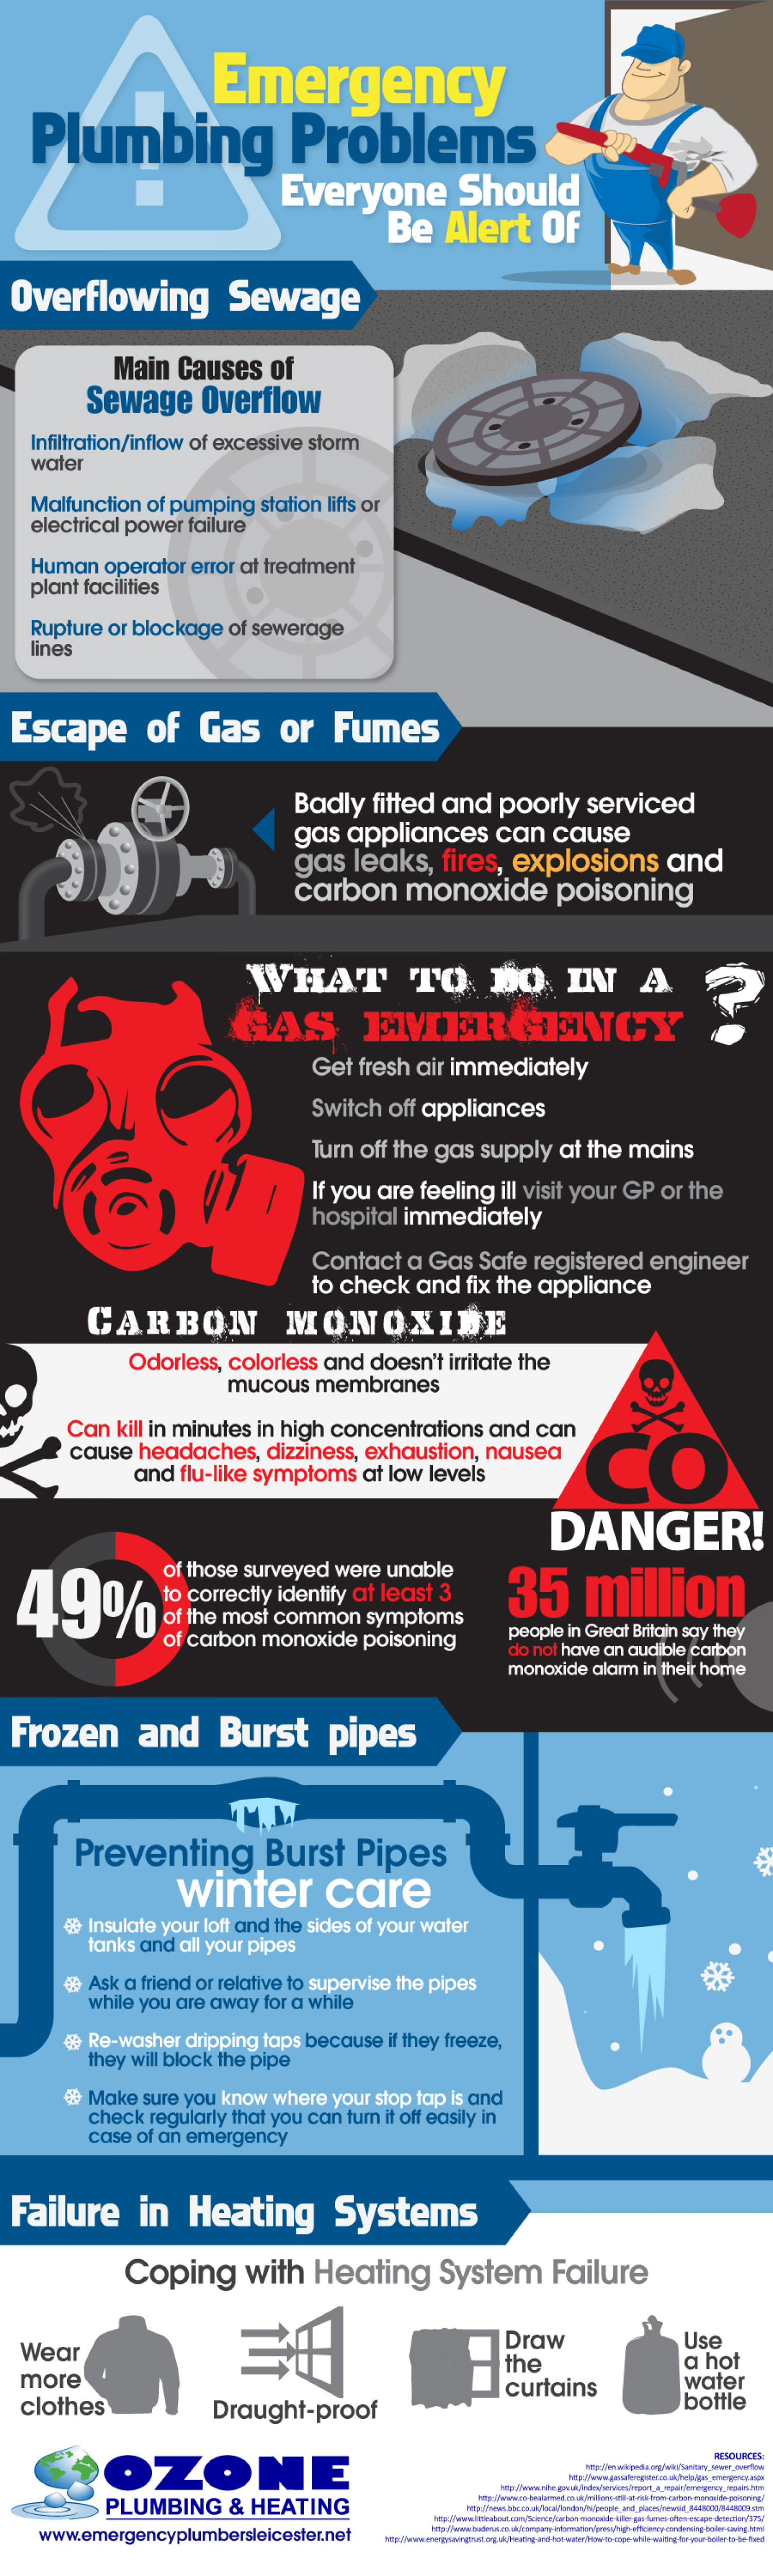 Emergency Plumbing Problems Everyone Should Be Alert Of Infographic